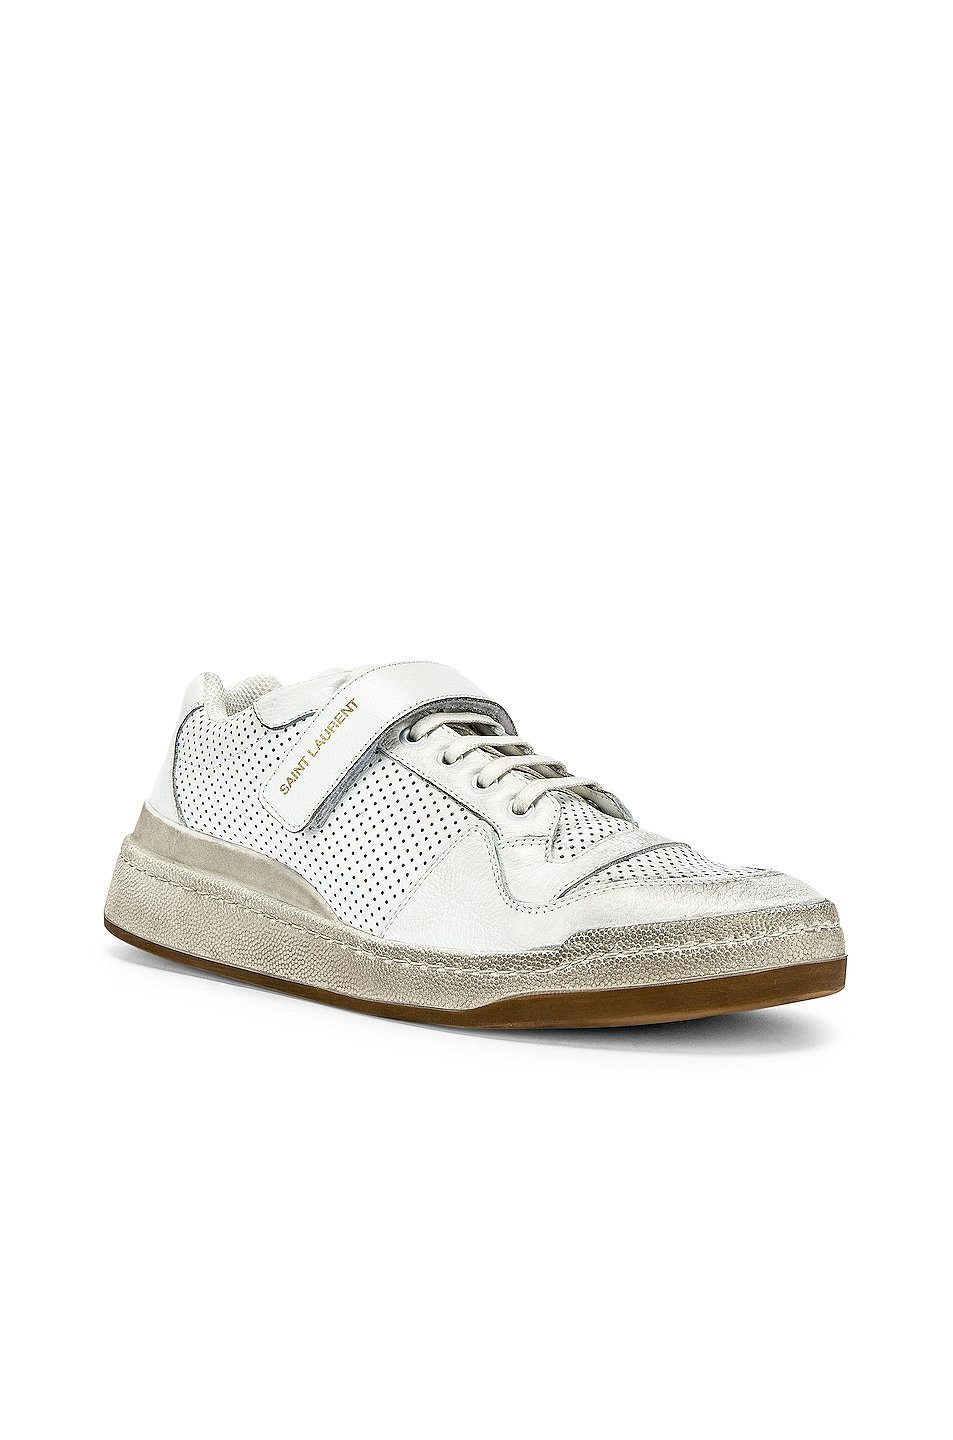 Image 2 of Saint Laurent Jeddo Low Tops in White